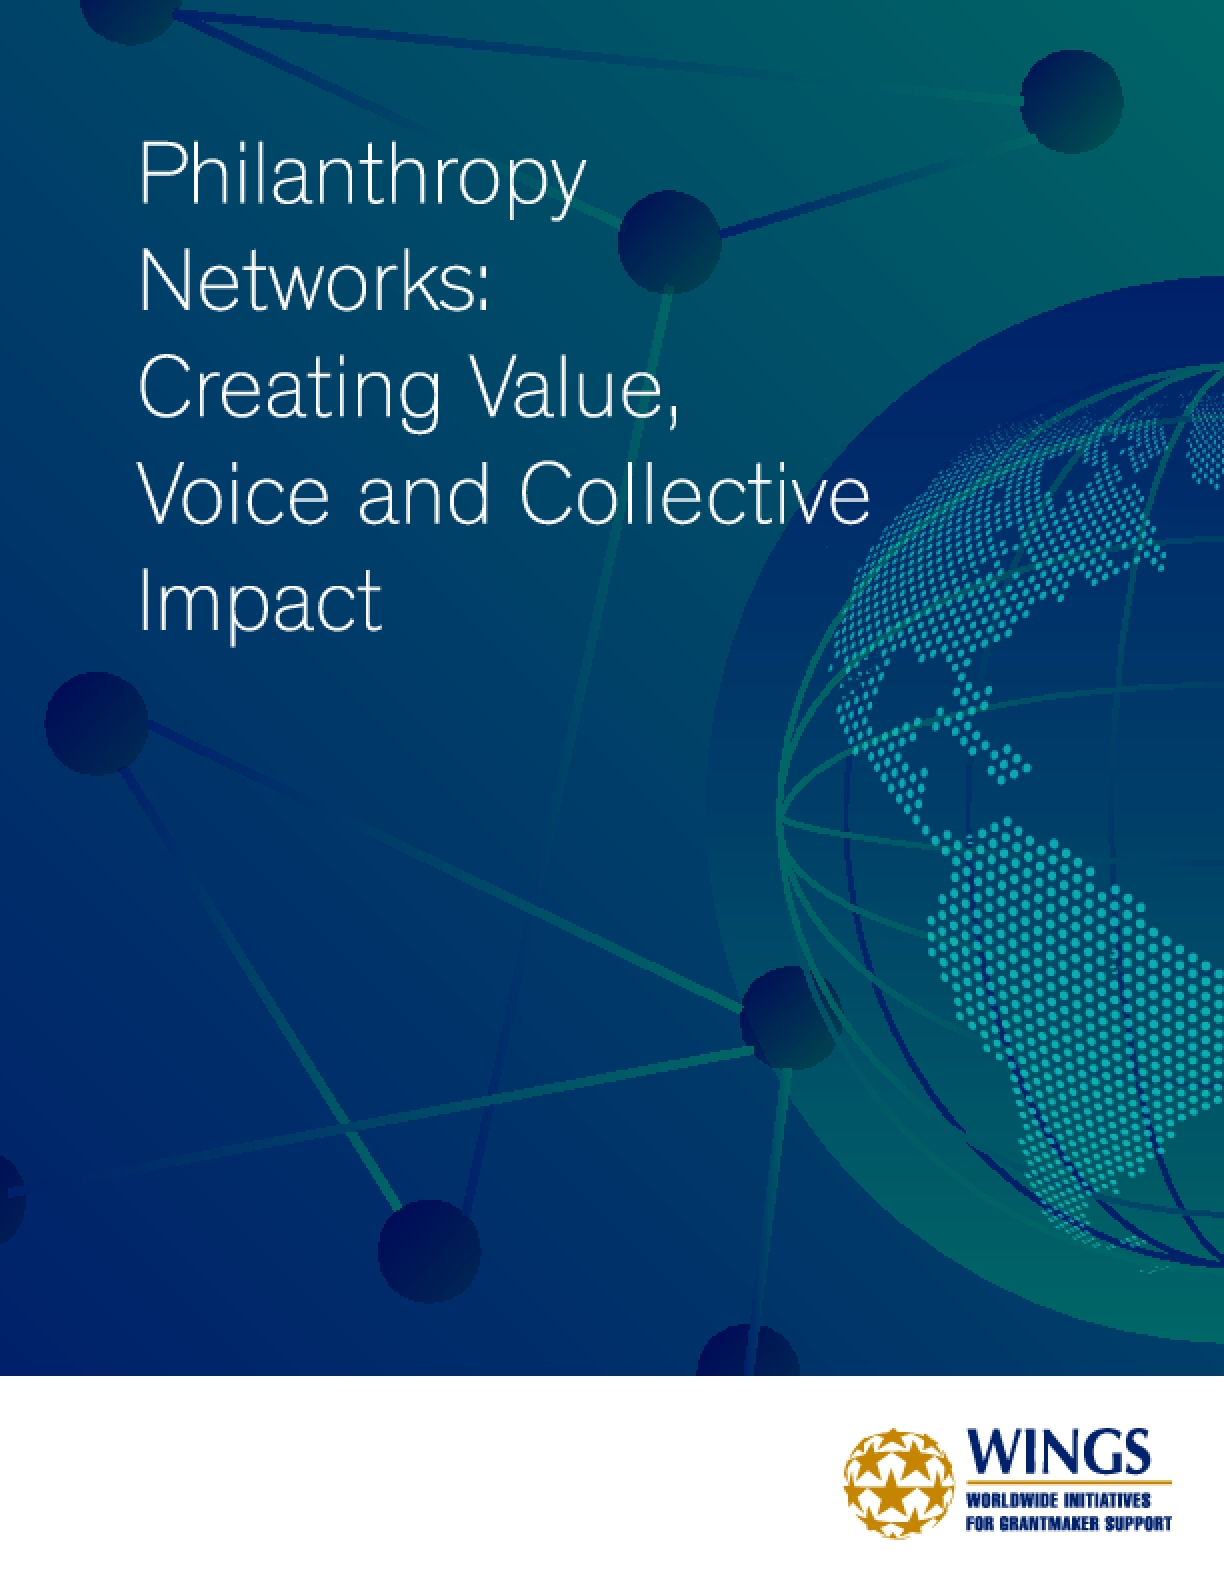 Philanthropy Networks: Creating Value, Voice and Collective Impact